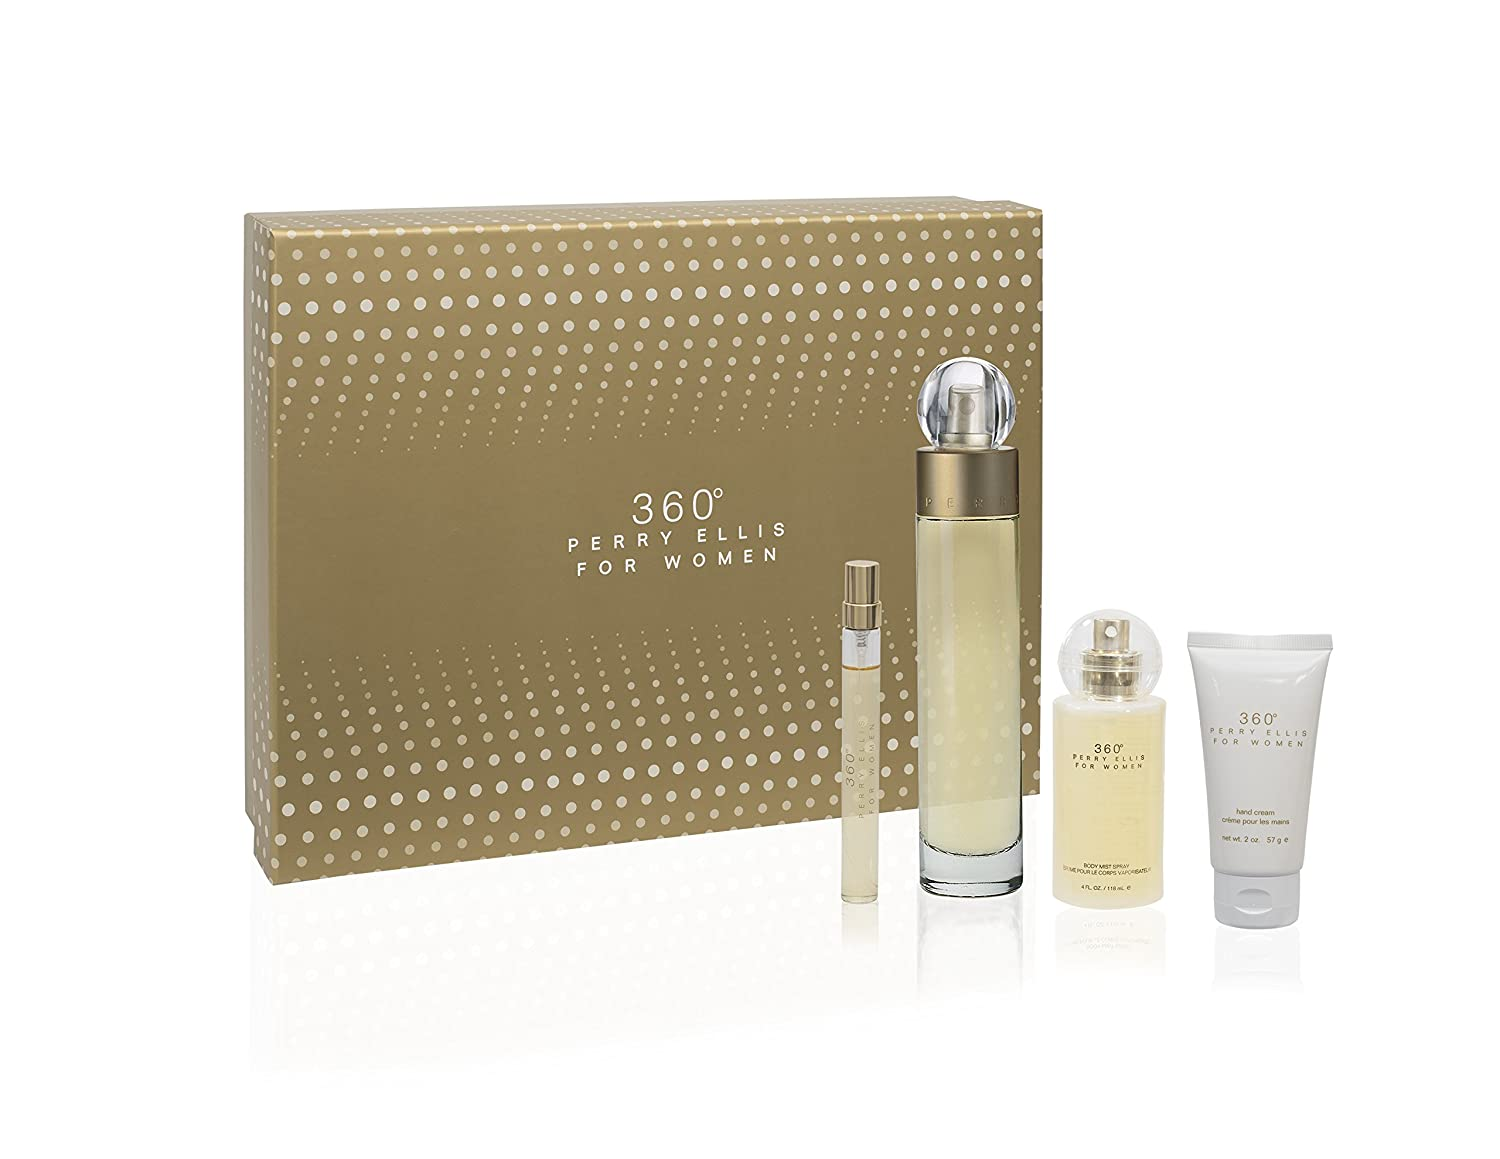 Perry Ellis 360 for Women, 4-piece Gift Set Falic Fashion Group 18.4071.90